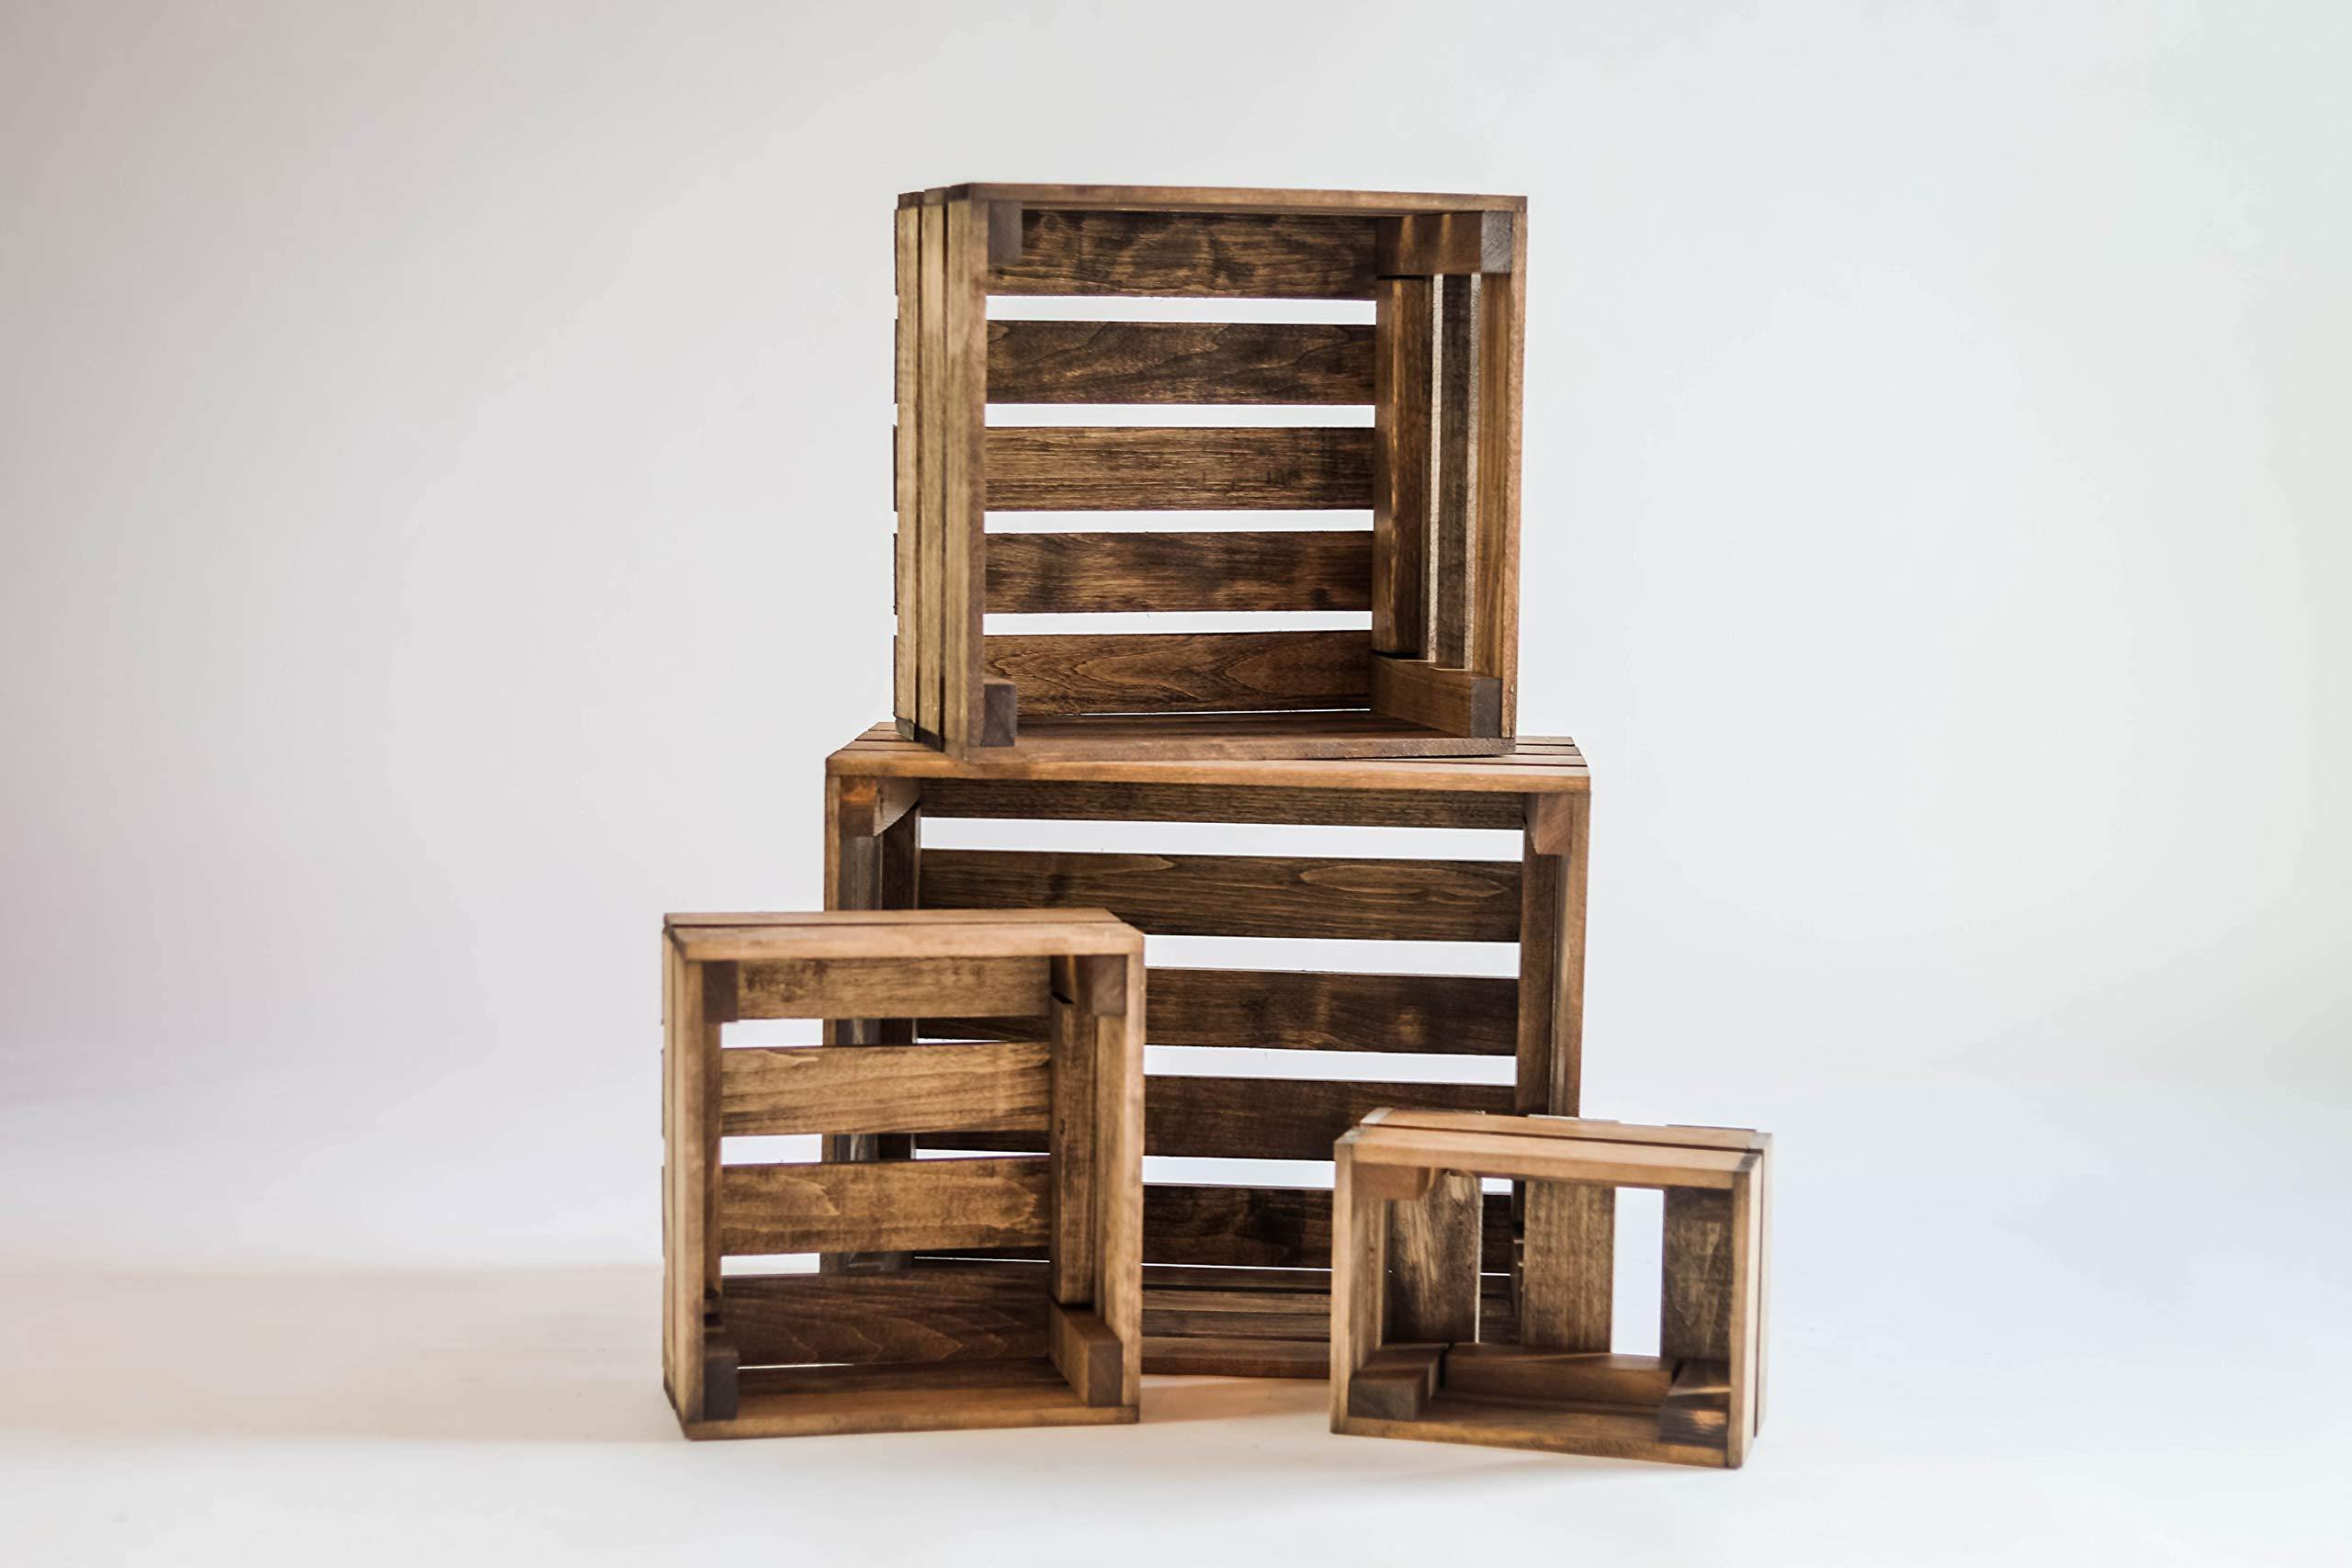 Darla'Studio 66 Wooden Nesting Boxes/Wood Crates